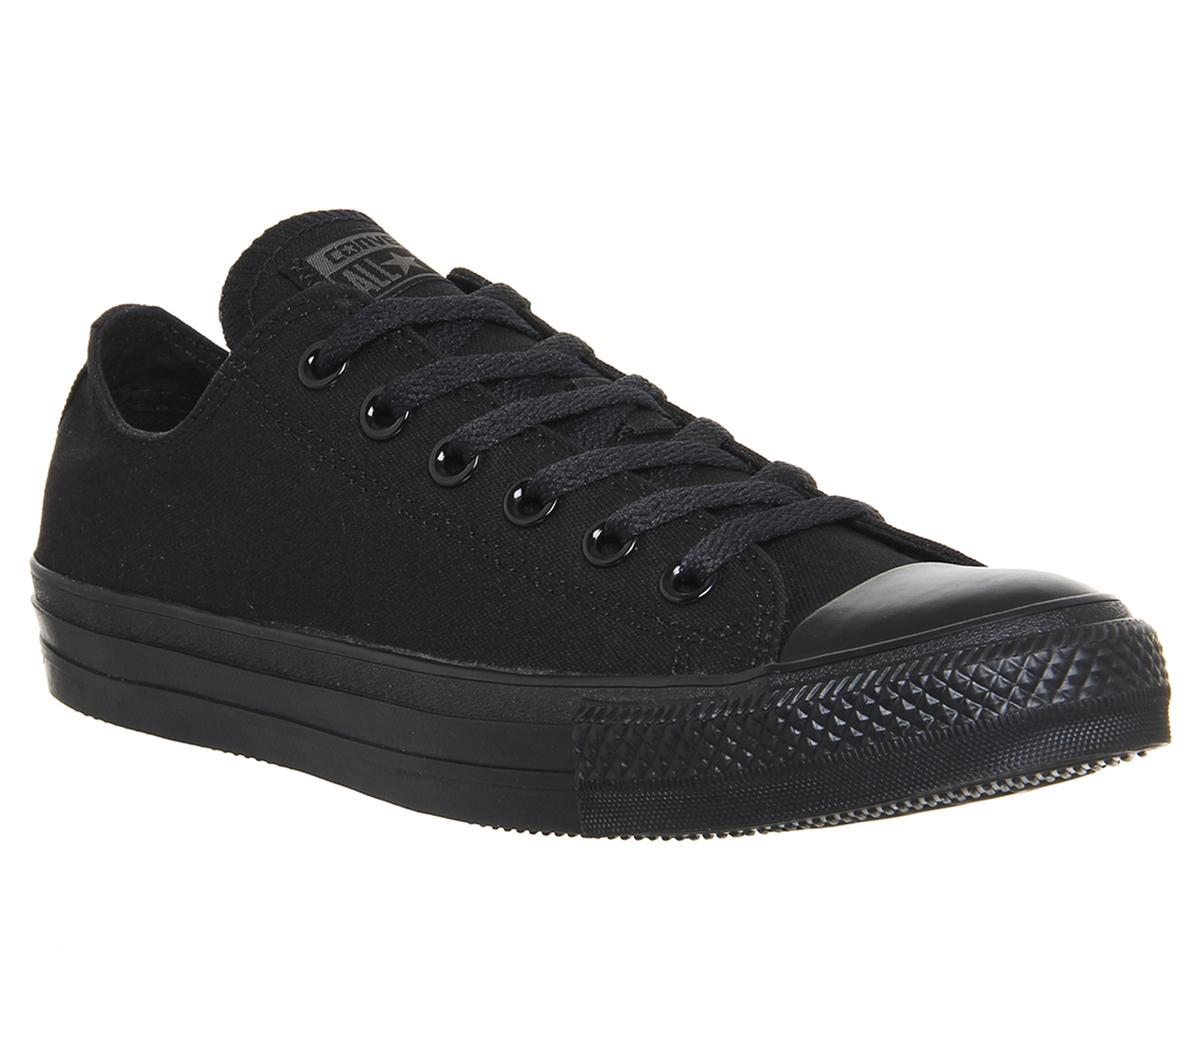 b631a6e90a70 Converse All Star Low Black Mono Canvas - Unisex Sports